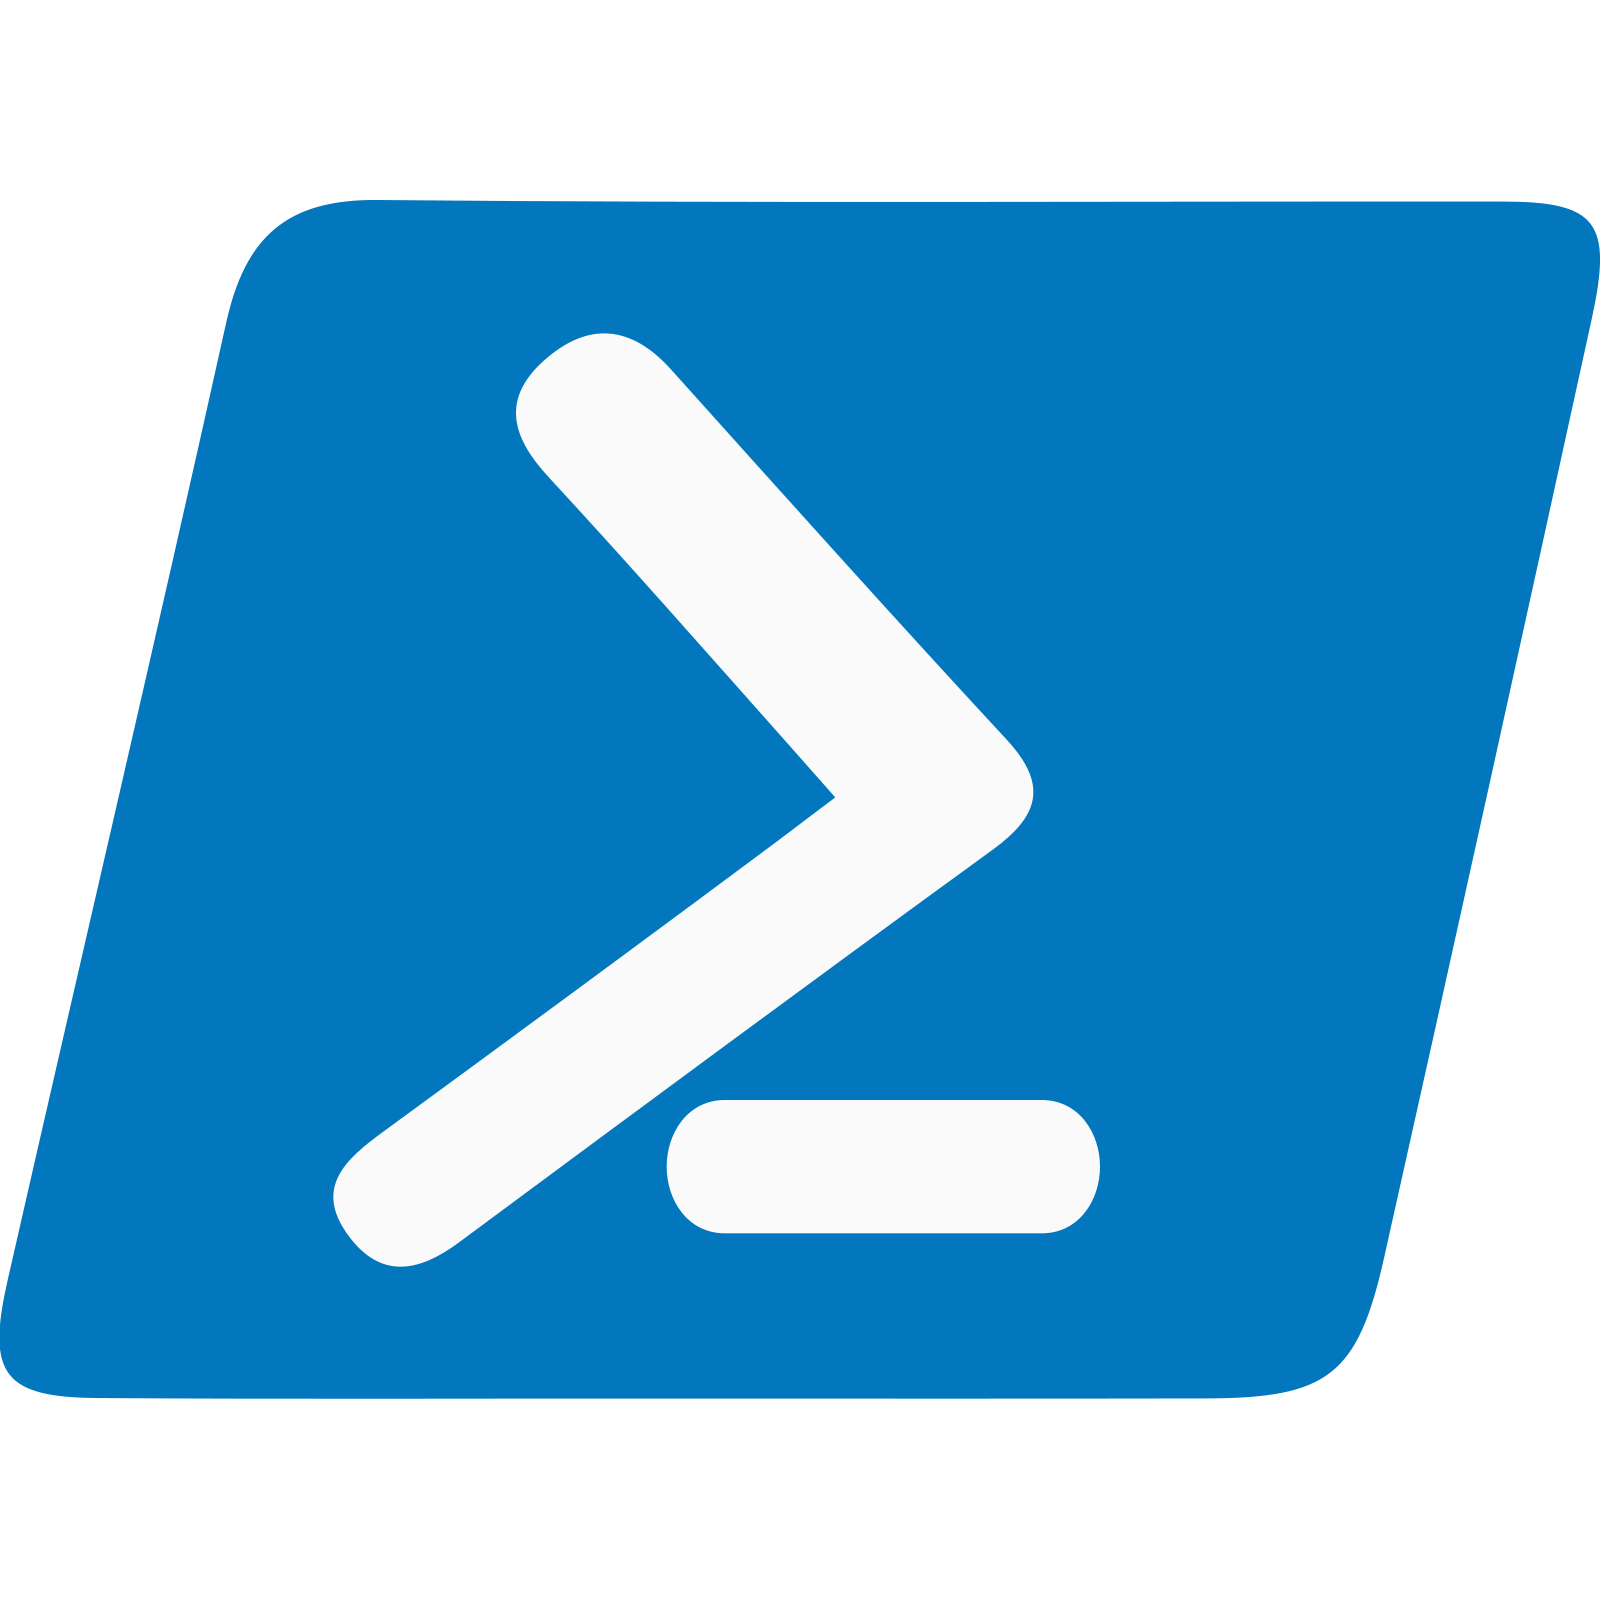 Episode 13: Microsoft Ignite PowerShell Wrap Up with guest speaker Michael Bender from Microsoft